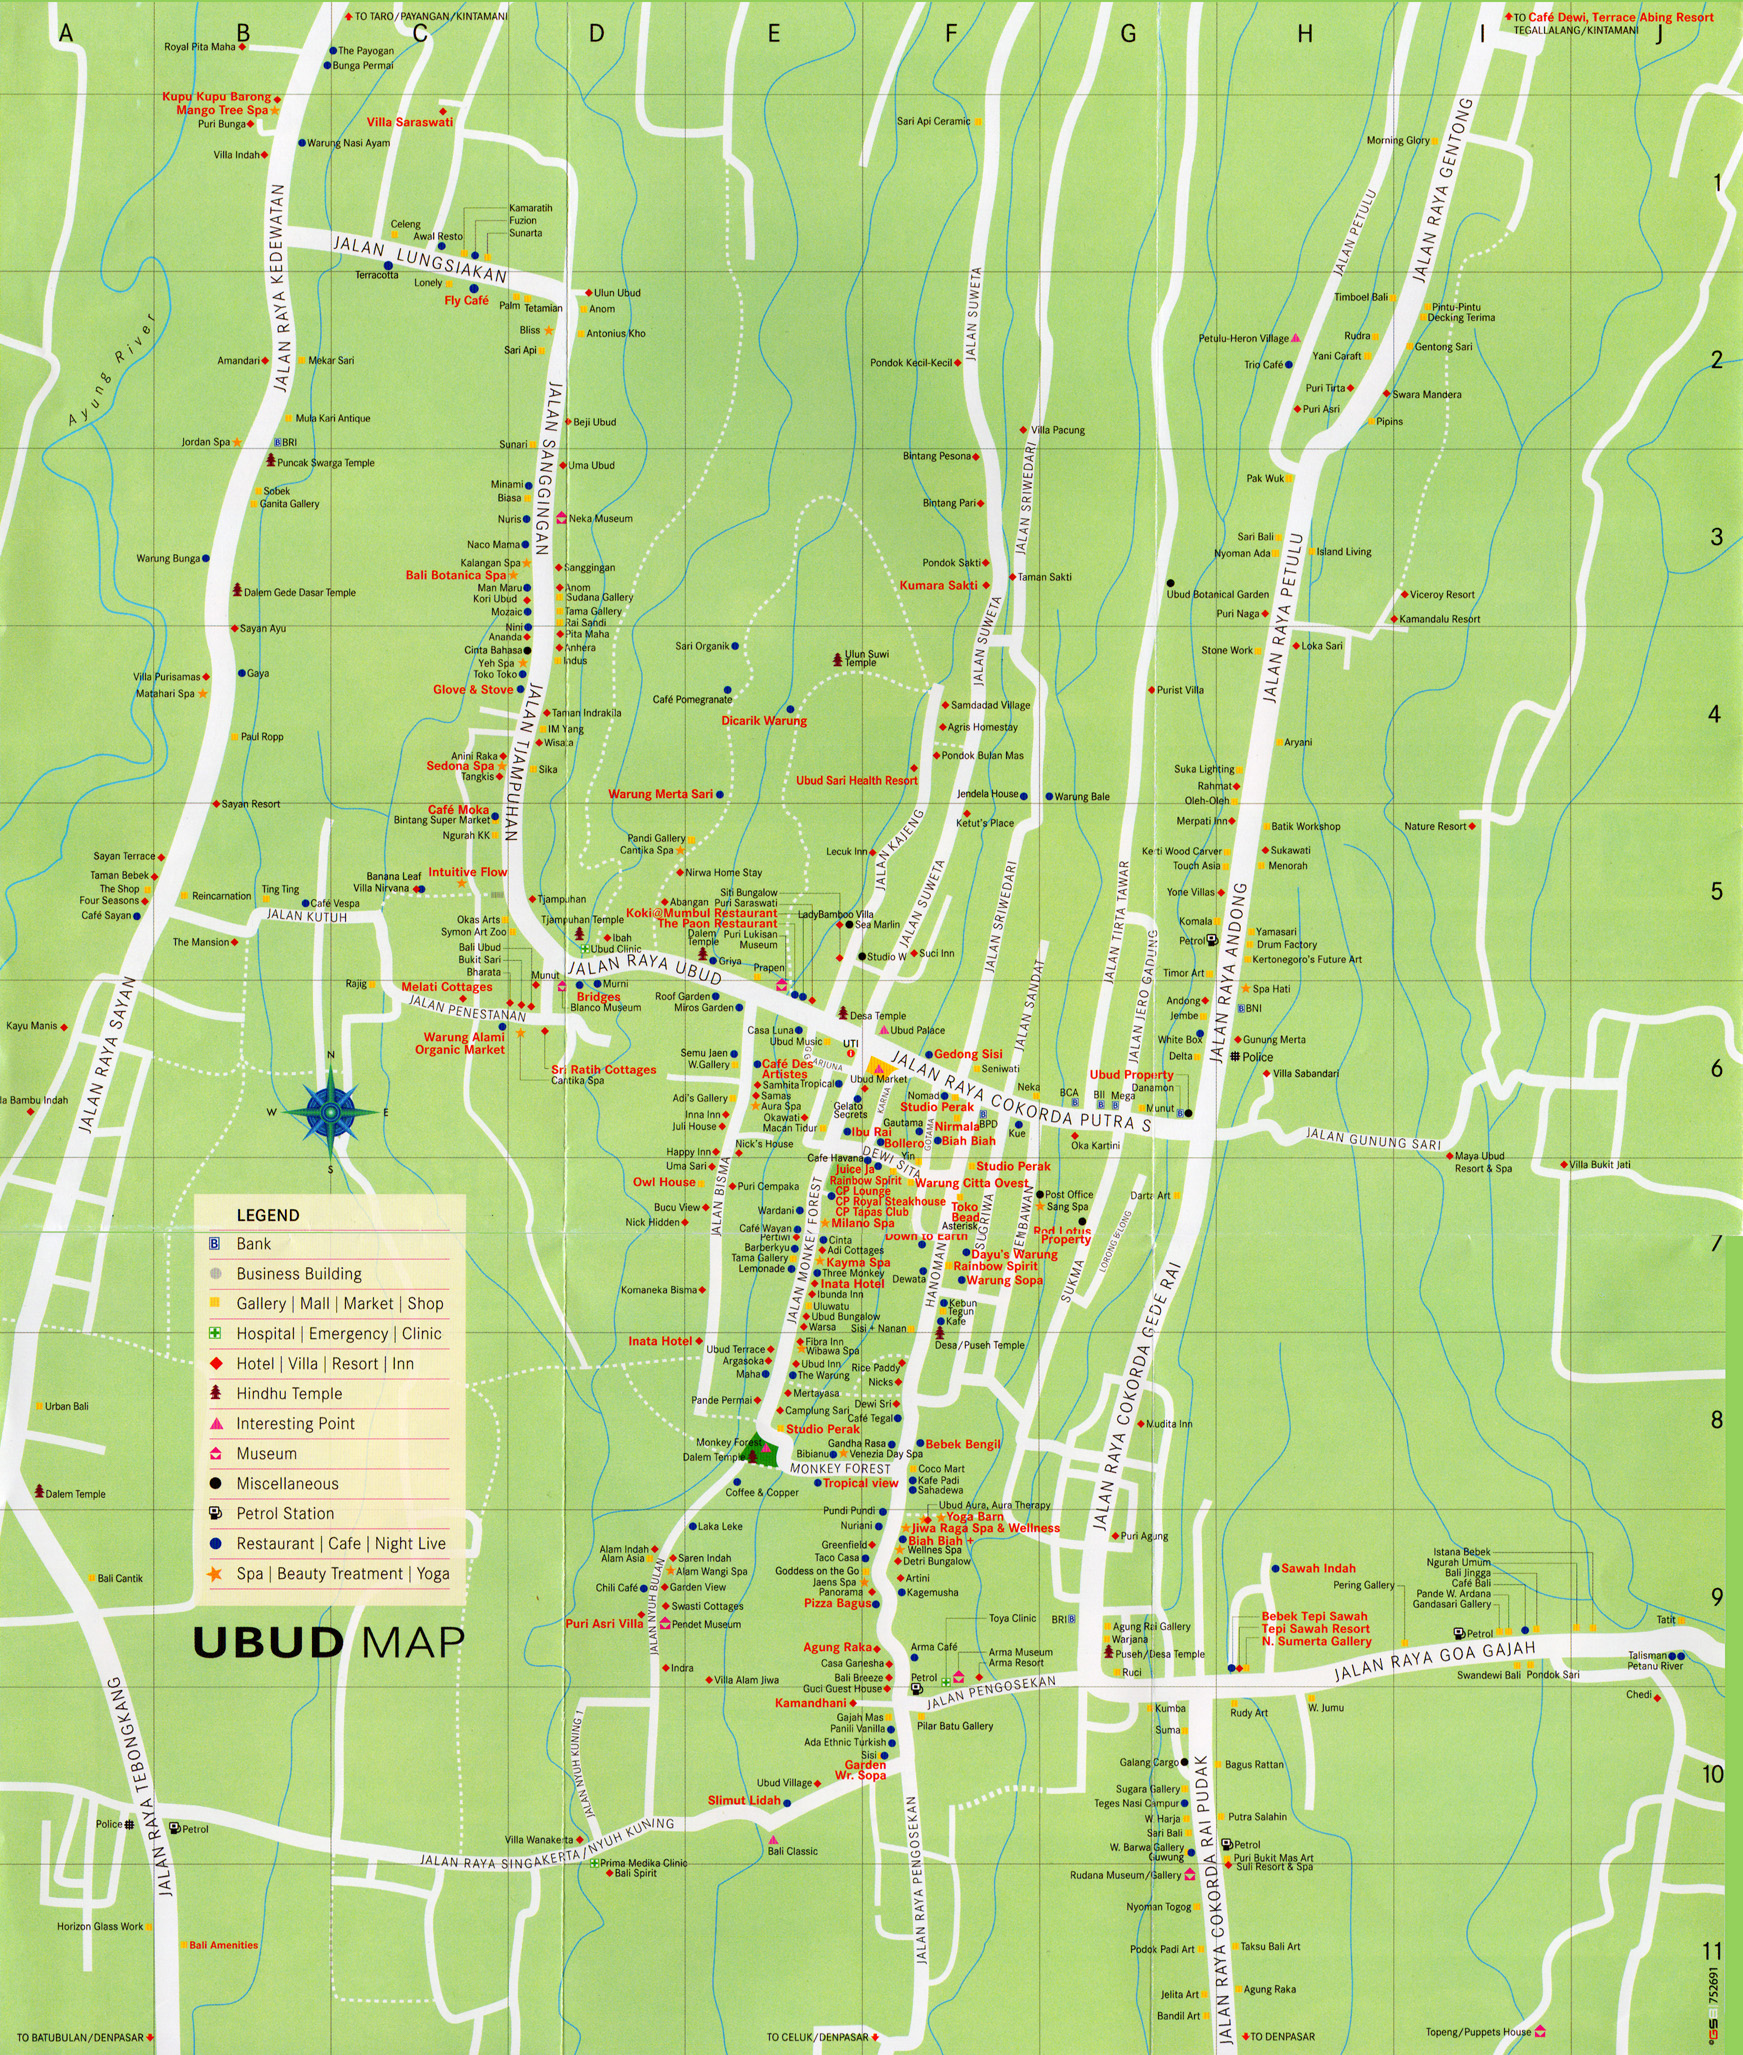 Ubud In One Map